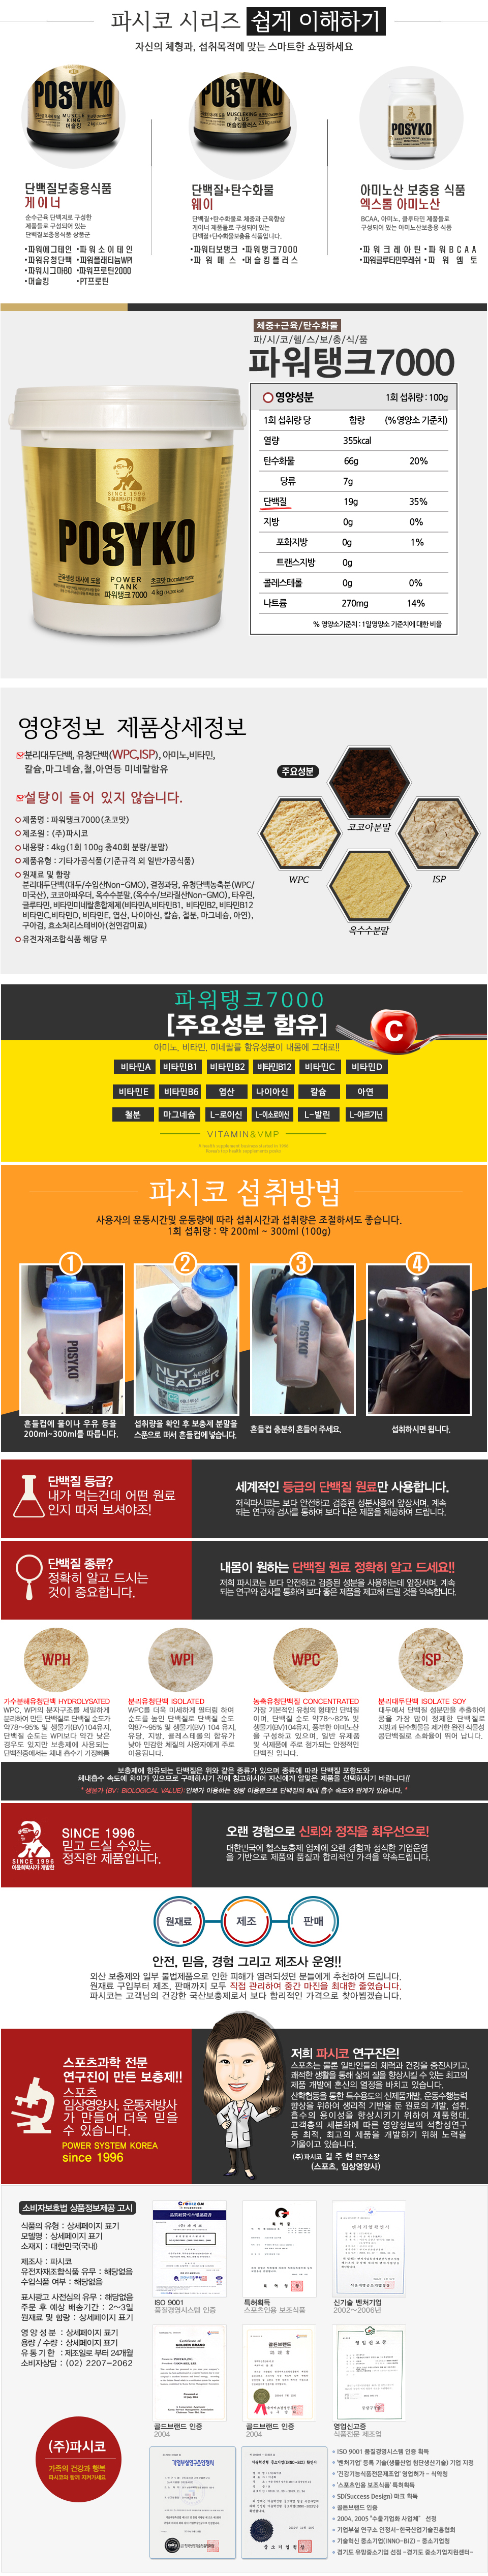 [ etc ] Powertank 7000 Chocolate Flavor 4Kg (Weight Training) Protein Supplement/Health Supplement/Shaker Included